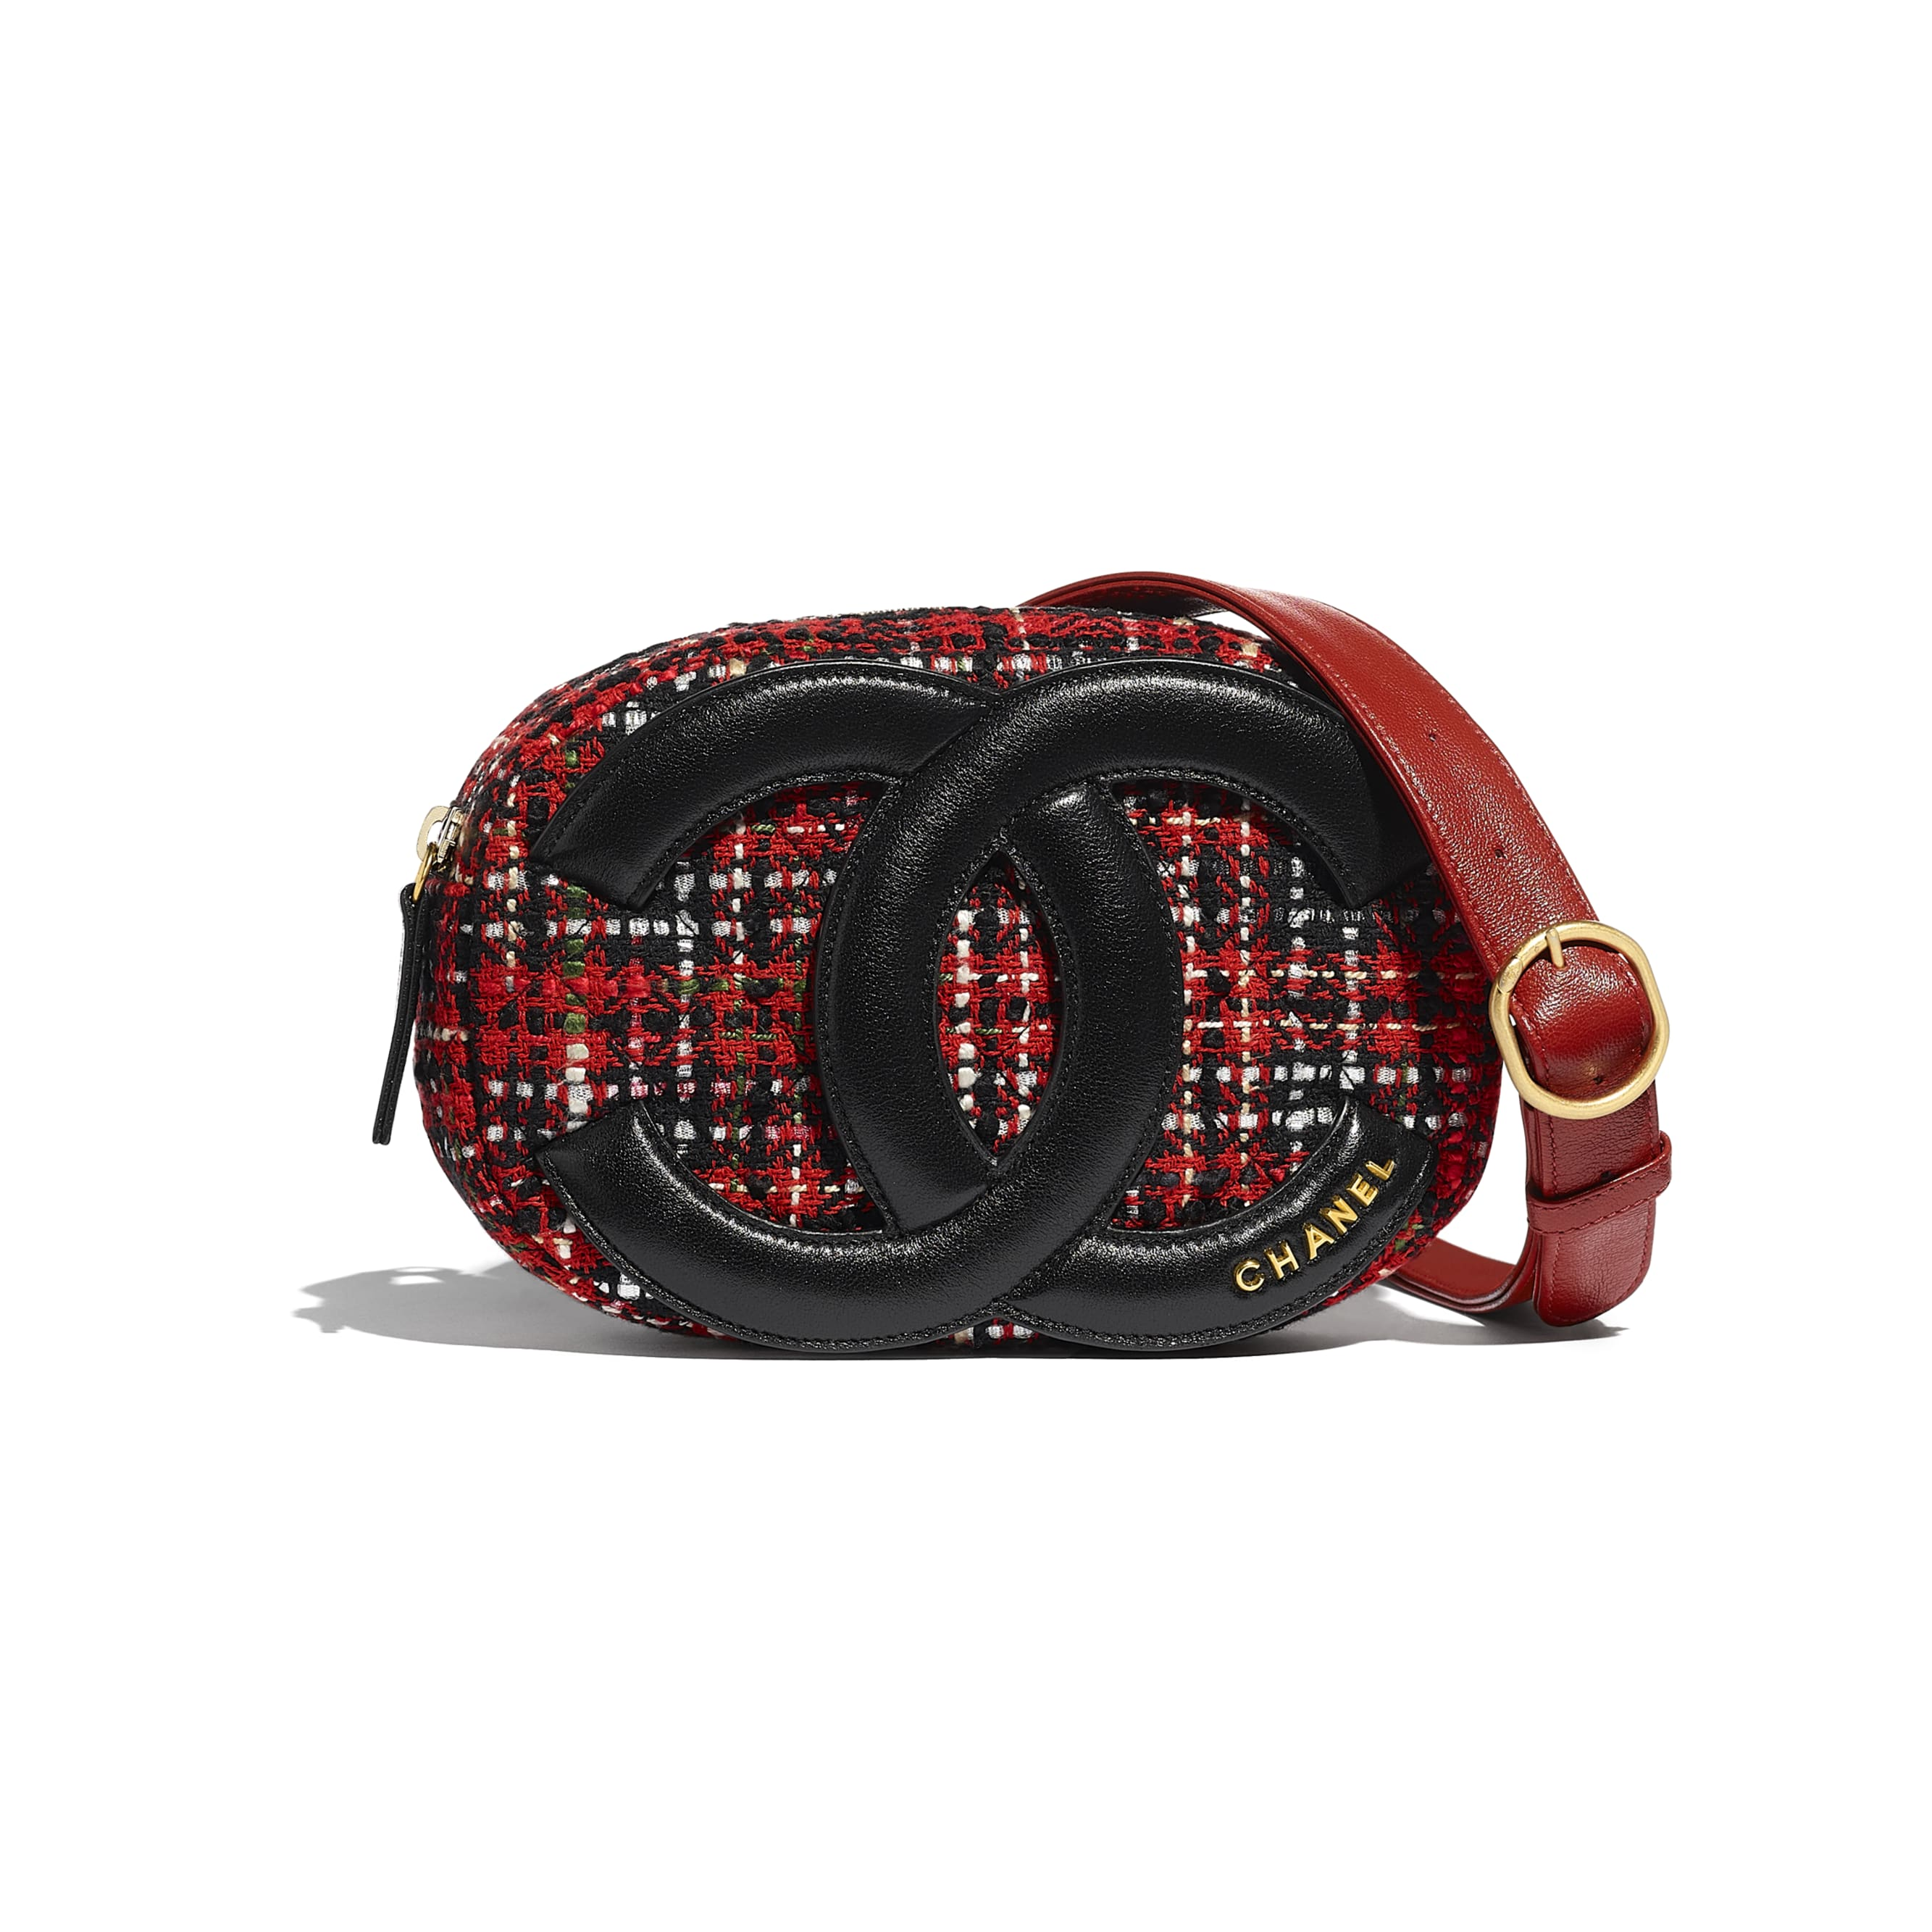 Waist Bag - Red, Black, White & Green - Tweed, Lambskin & Gold Metal - CHANEL - Default view - see standard sized version